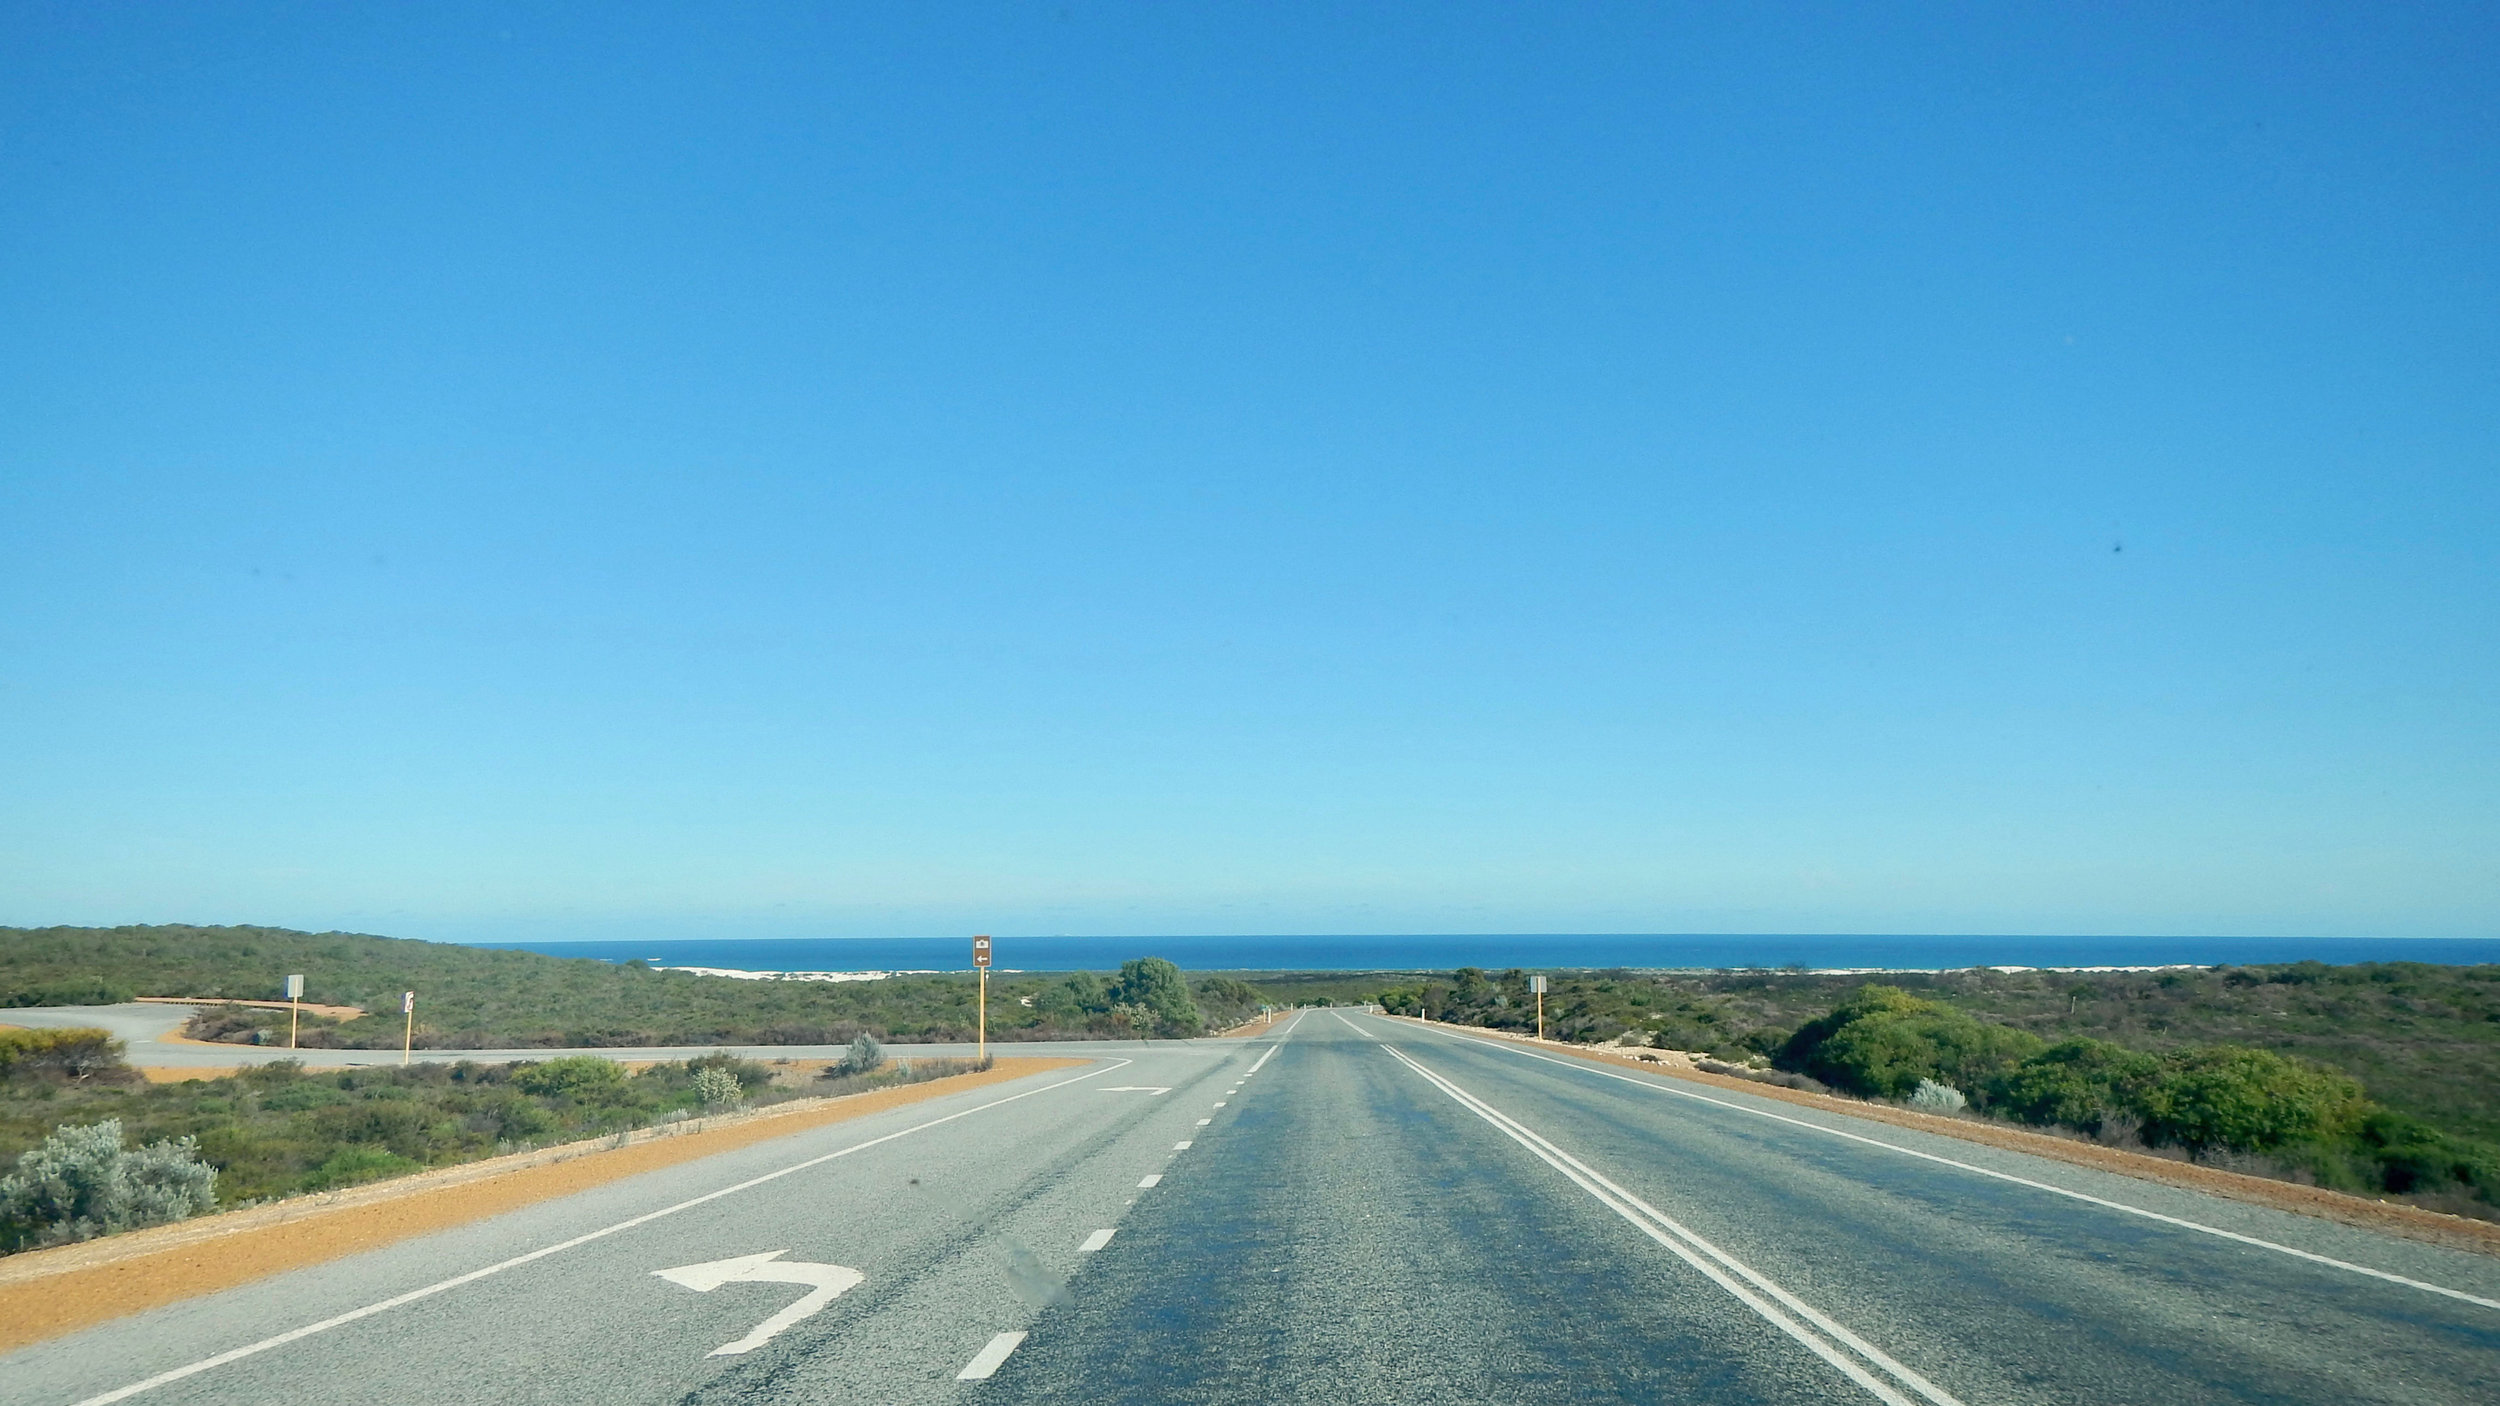 Road between Perth and Exmouth, Western Australia, @acrosslandsea